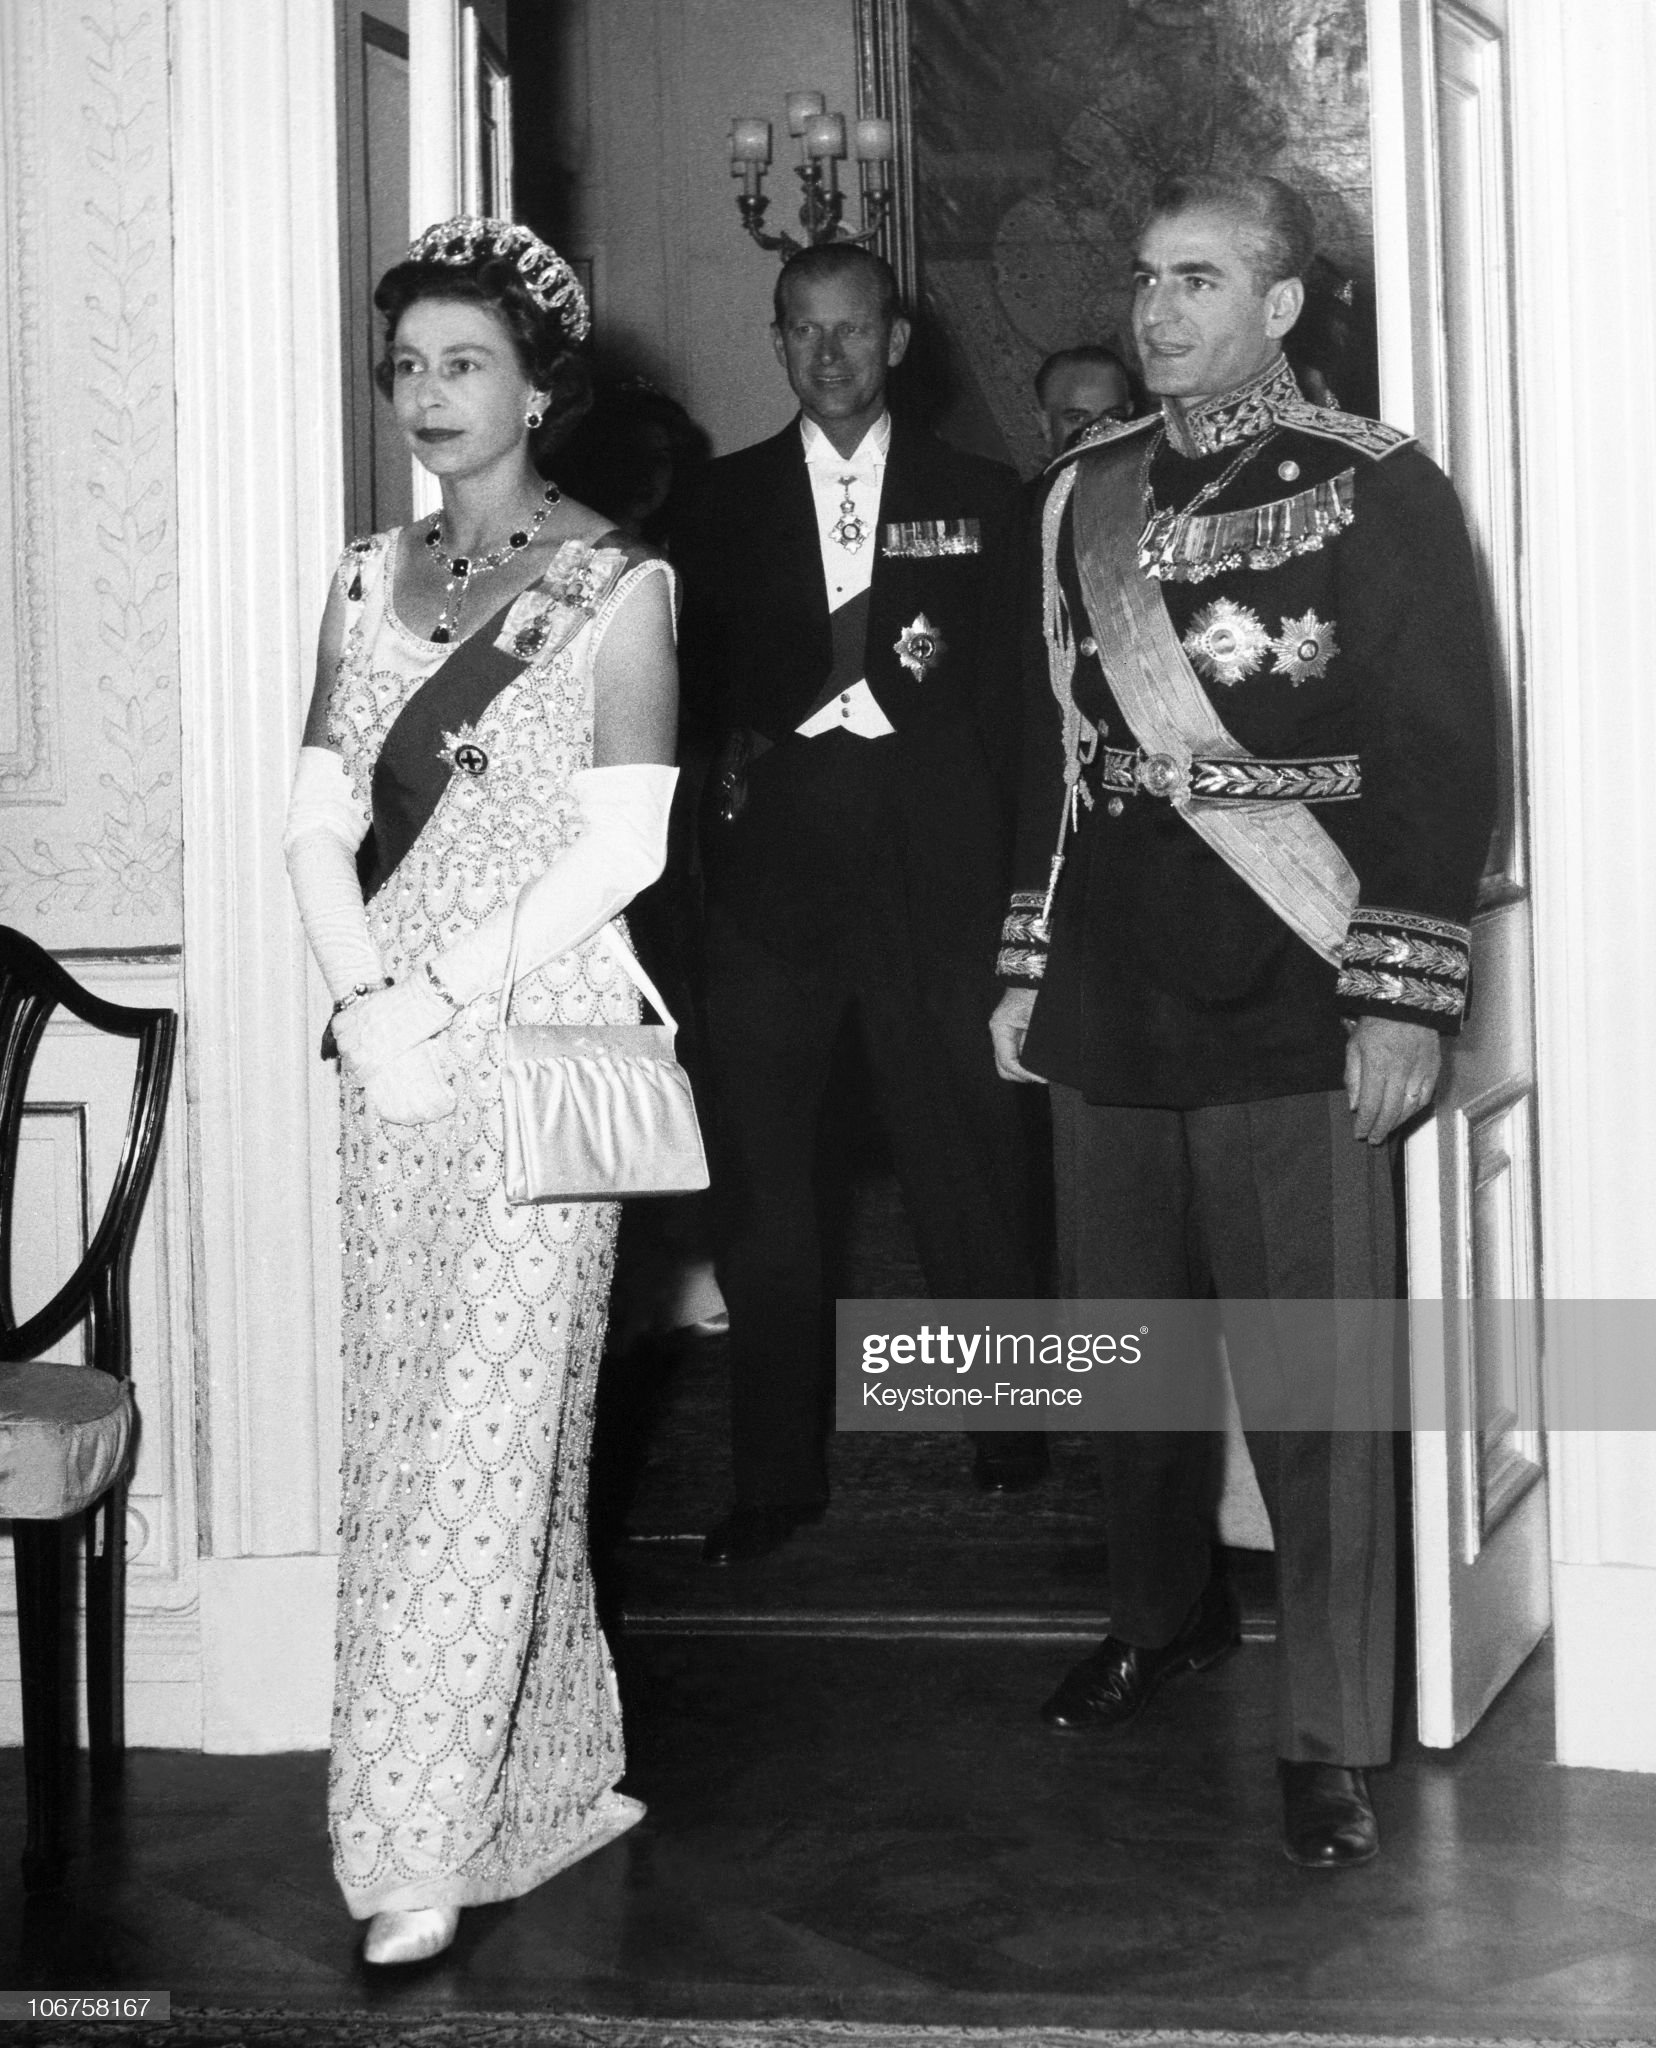 Tehran, British Embassy. State Dinner. Hm The Queen Elisabeth Ii, Shah Of Persia And Prince Philip In March 1961. : News Photo